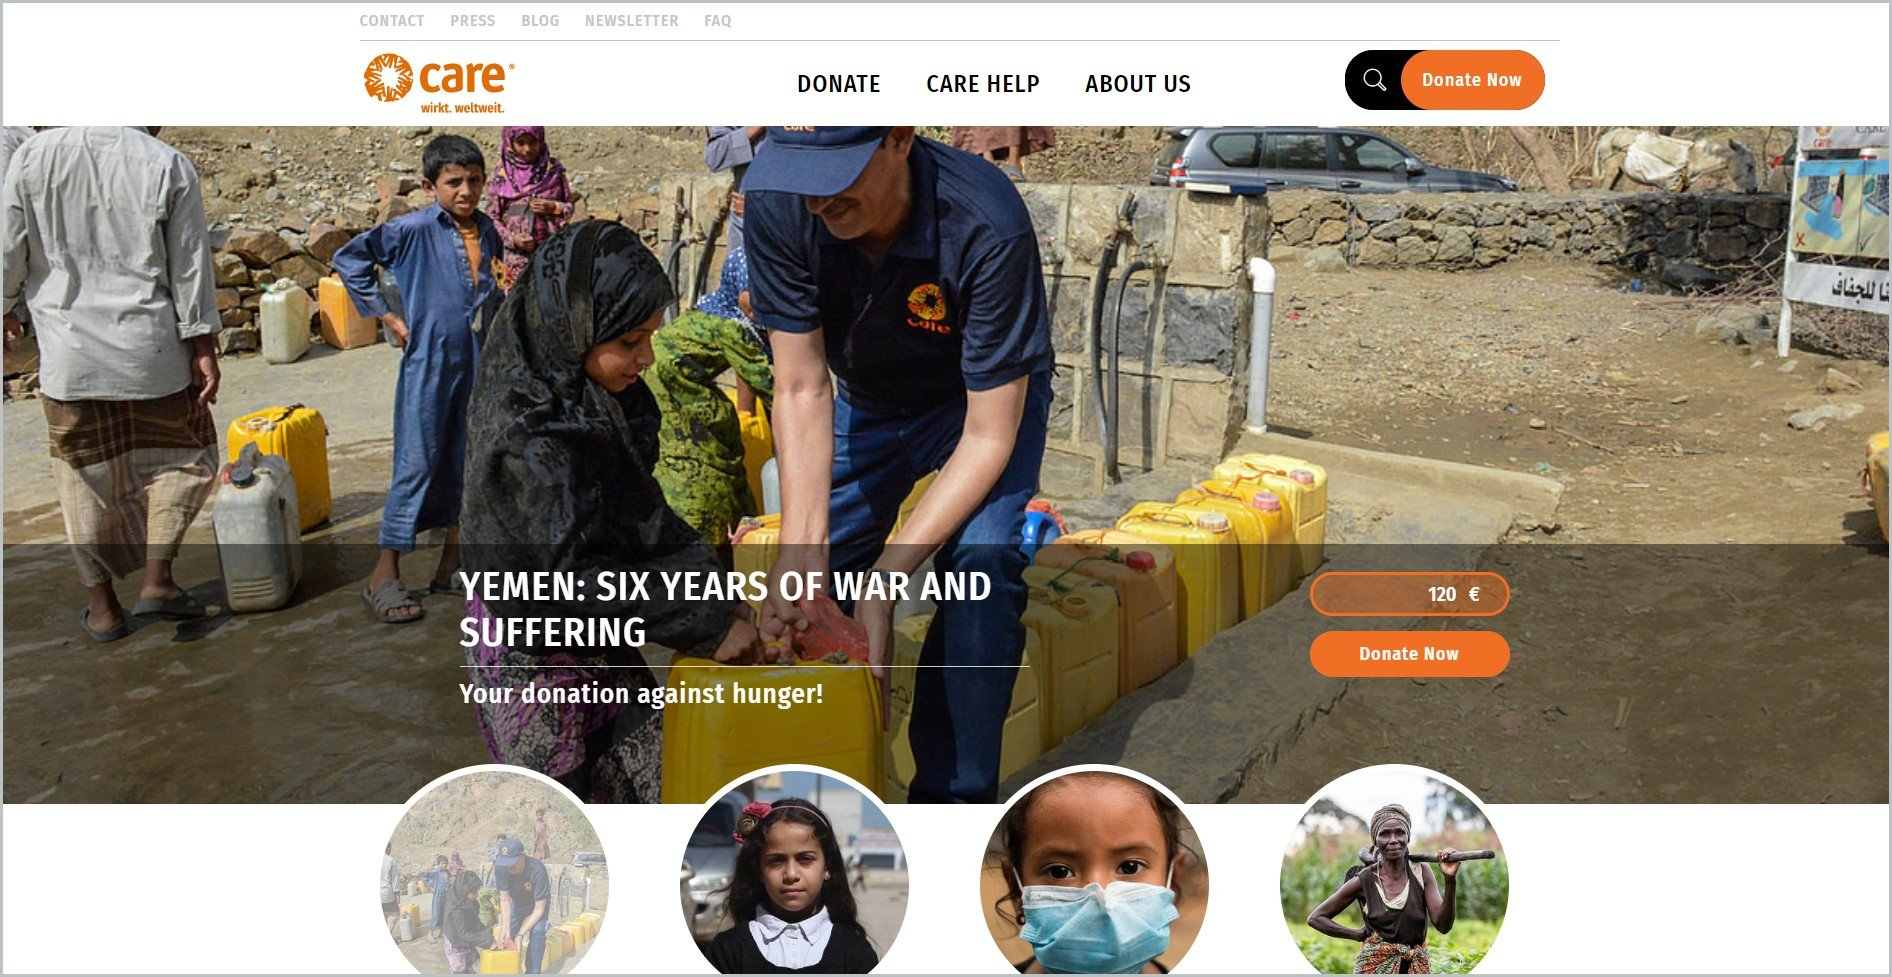 screenshot of CARE homepage with white header bearing the website's name and main navigation menu, it showcases an image of a volunteer helping a young girl with a yellow gallon of water